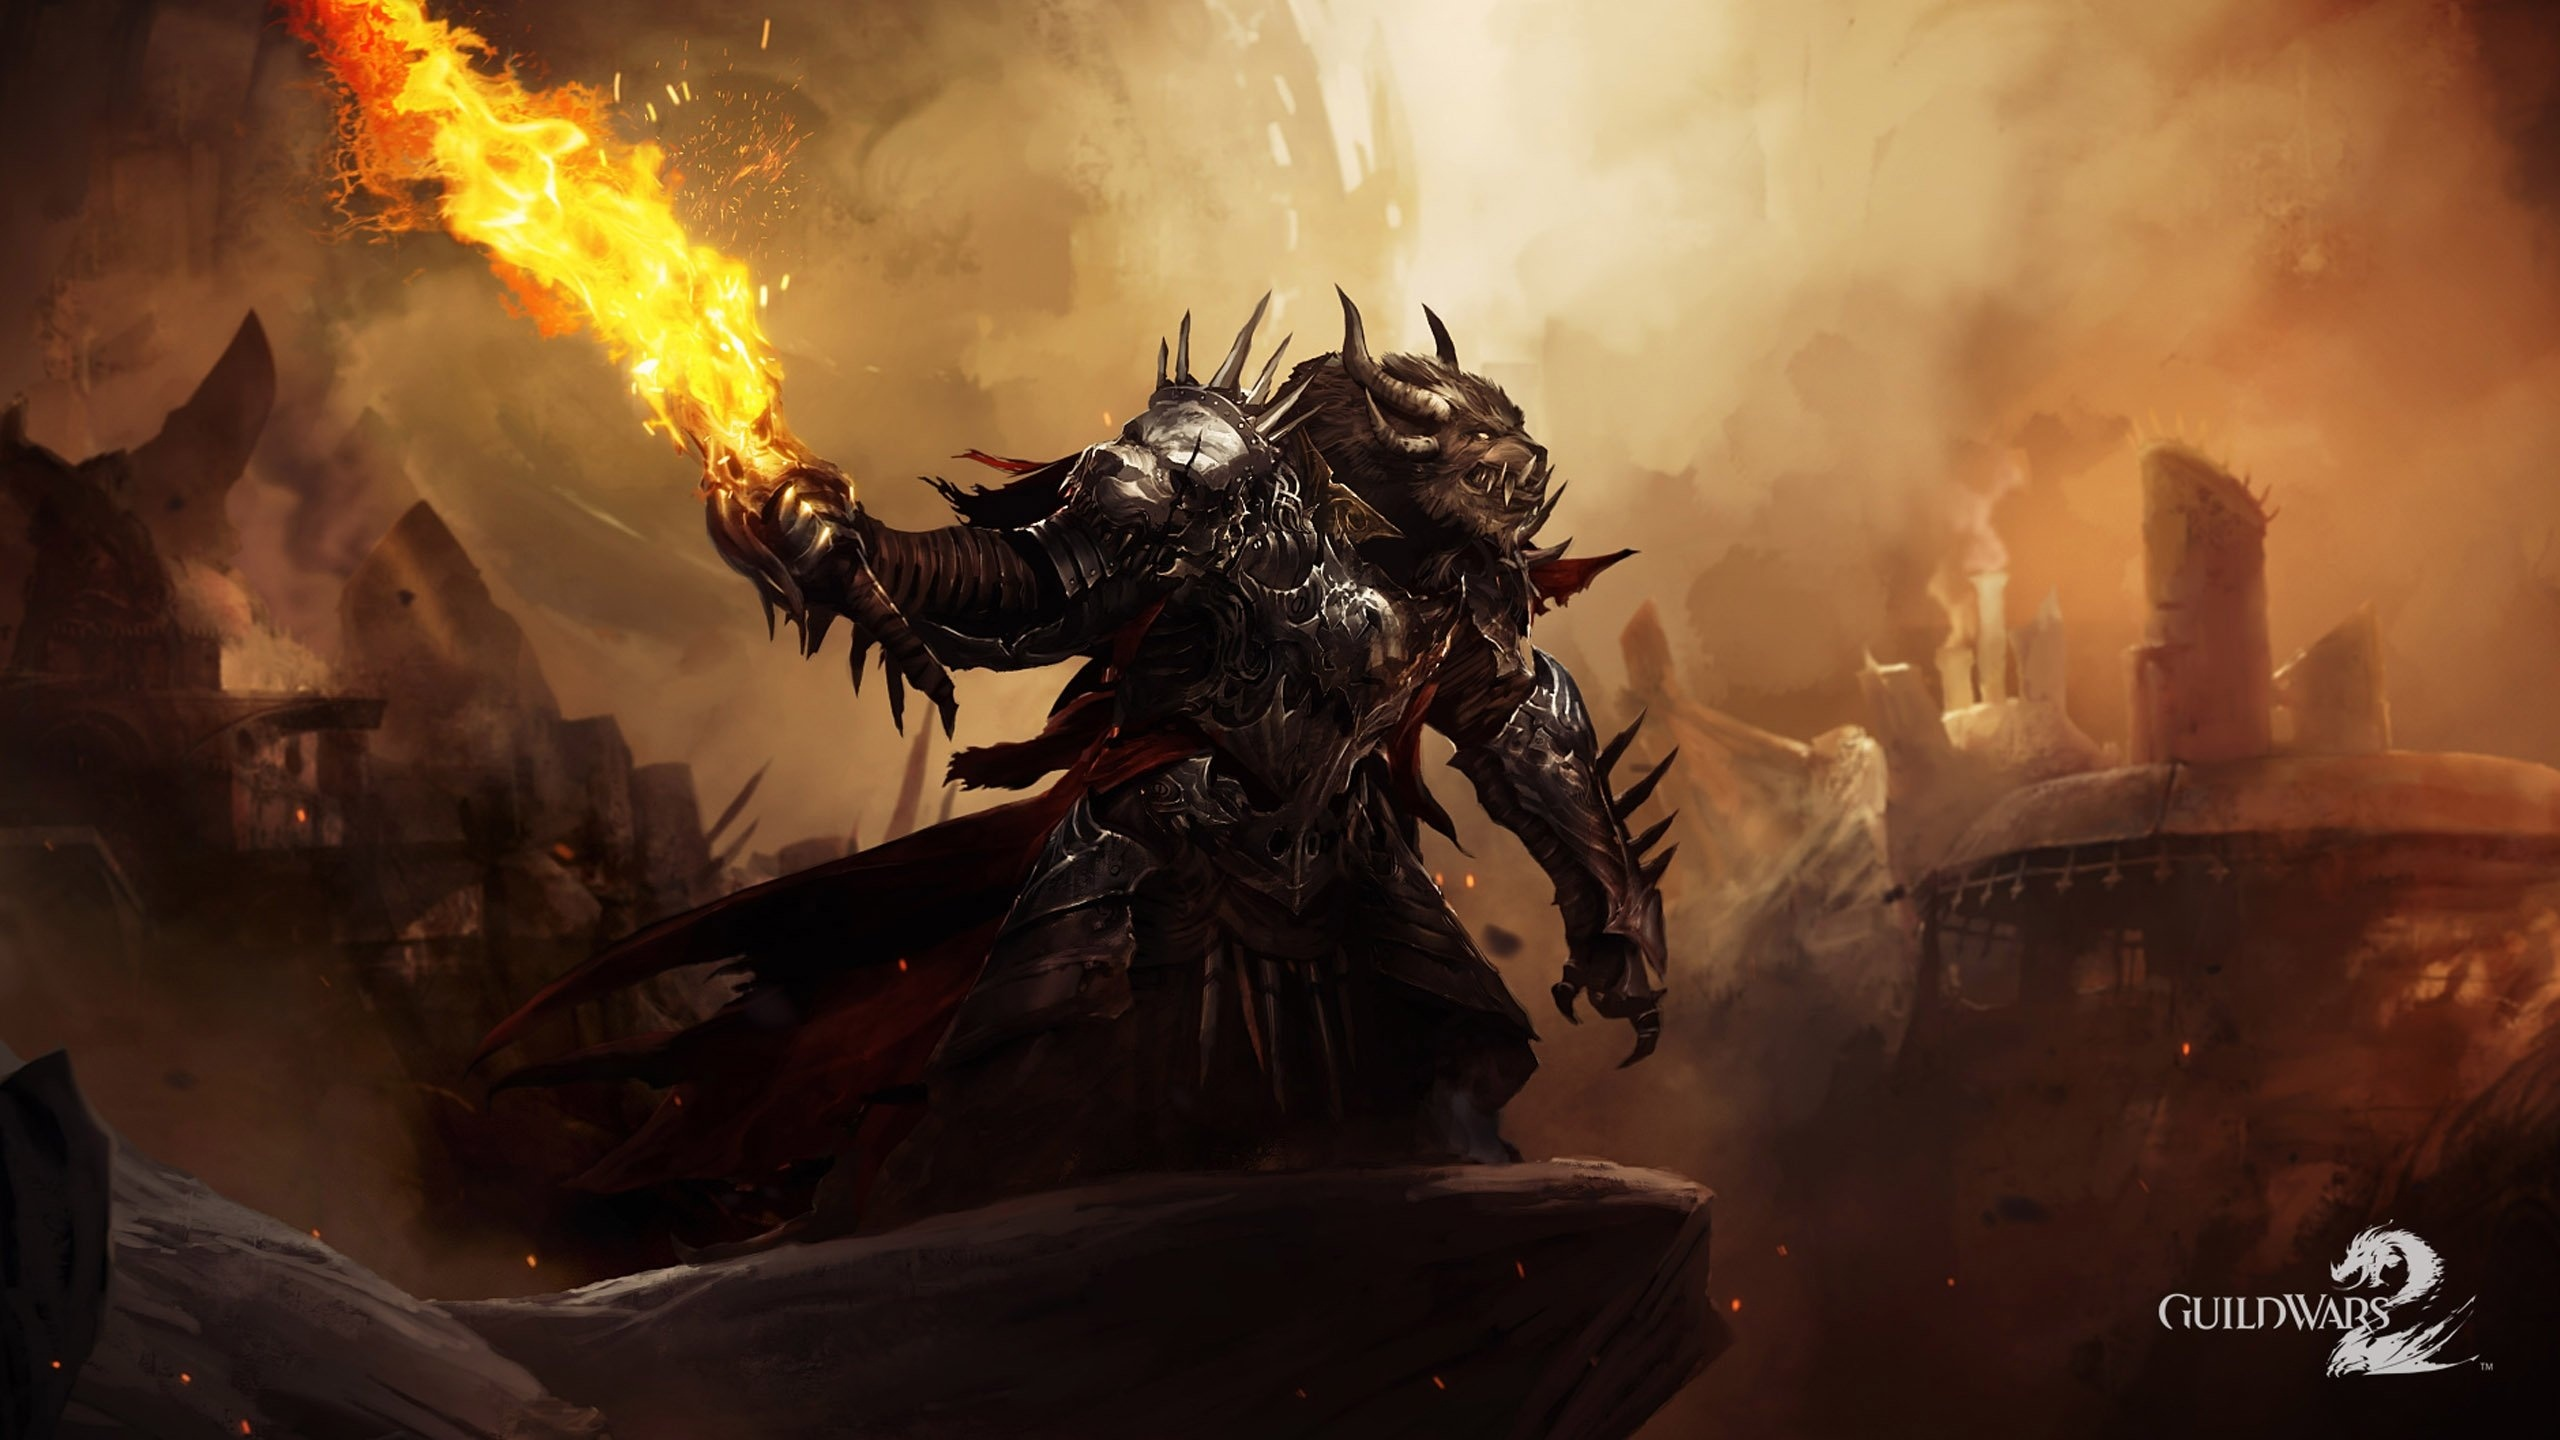 Free Download Guild Wars 2 Wallpaper 1080p 2560x1440 For Your